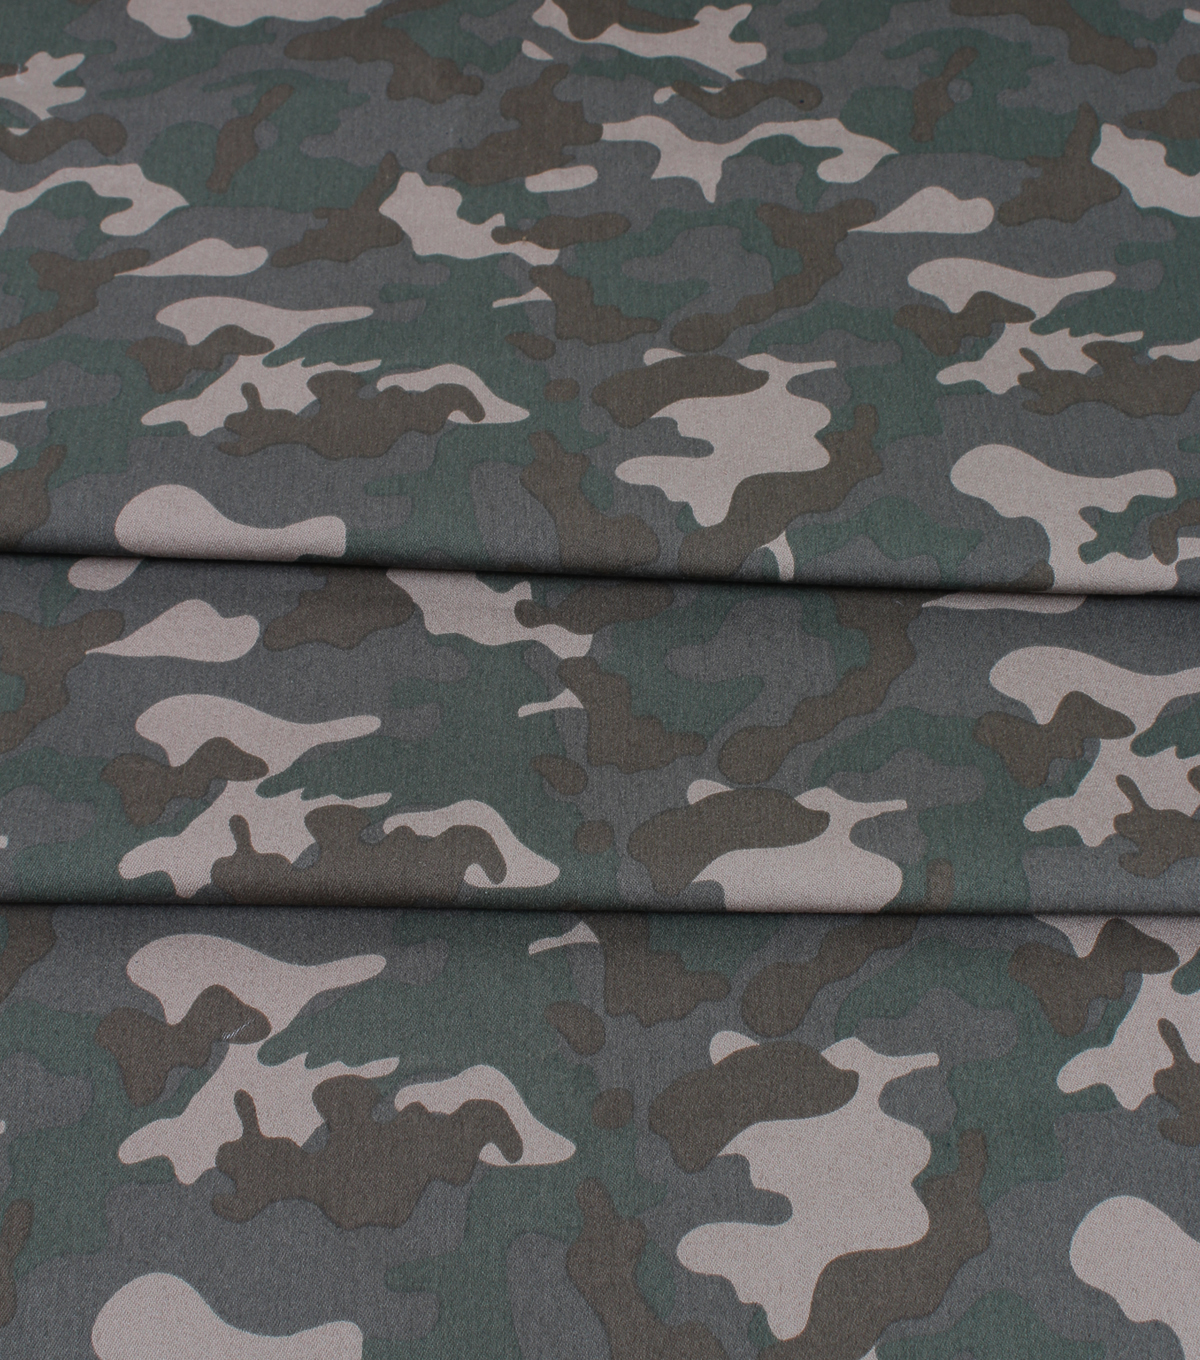 GREEN PU Leather Look Cloth Upholstery Fabric Material CAMOUFLAGE